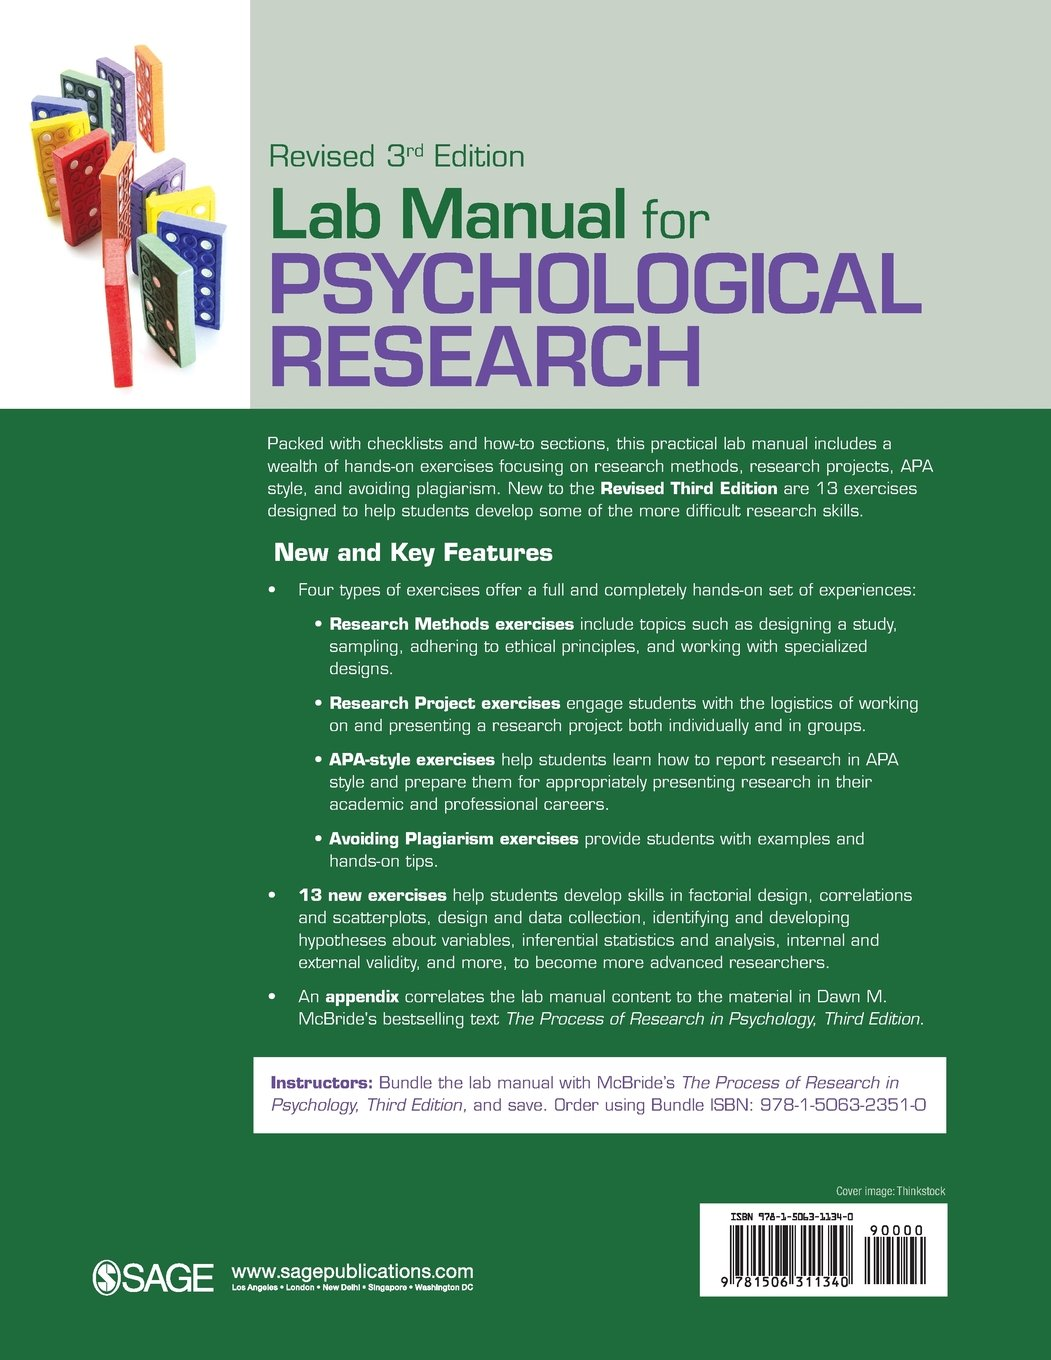 Lab Manual for Psychological Research: Amazon.co.uk: Dawn M. Mcbride, J.  Cooper Cutting: 9781506311340: Books